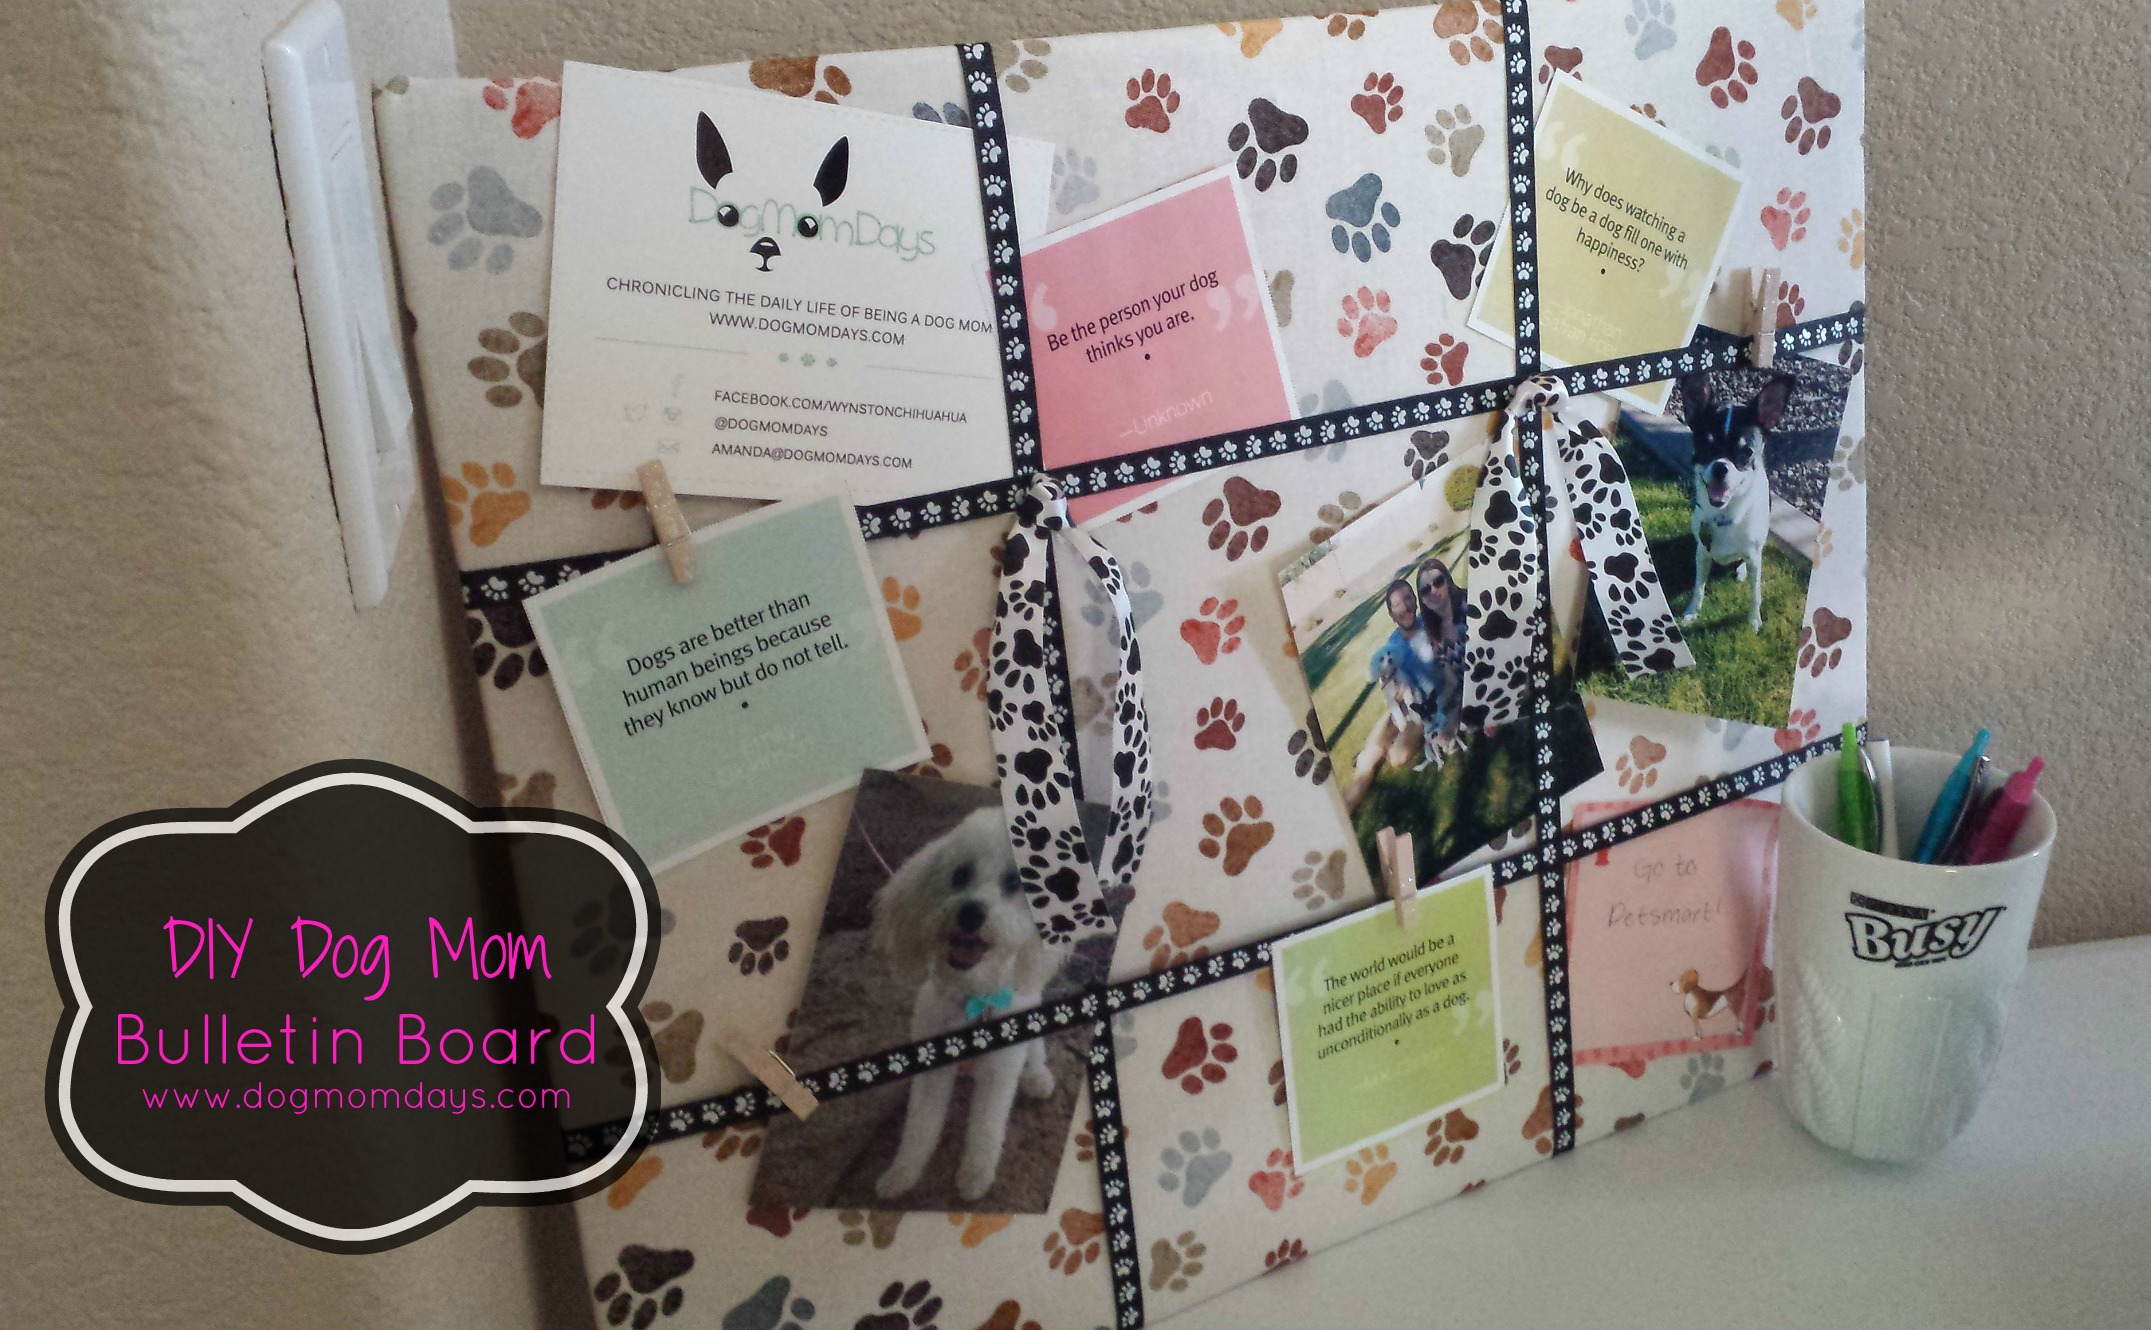 DIY: Dog Mom Bulletin Board